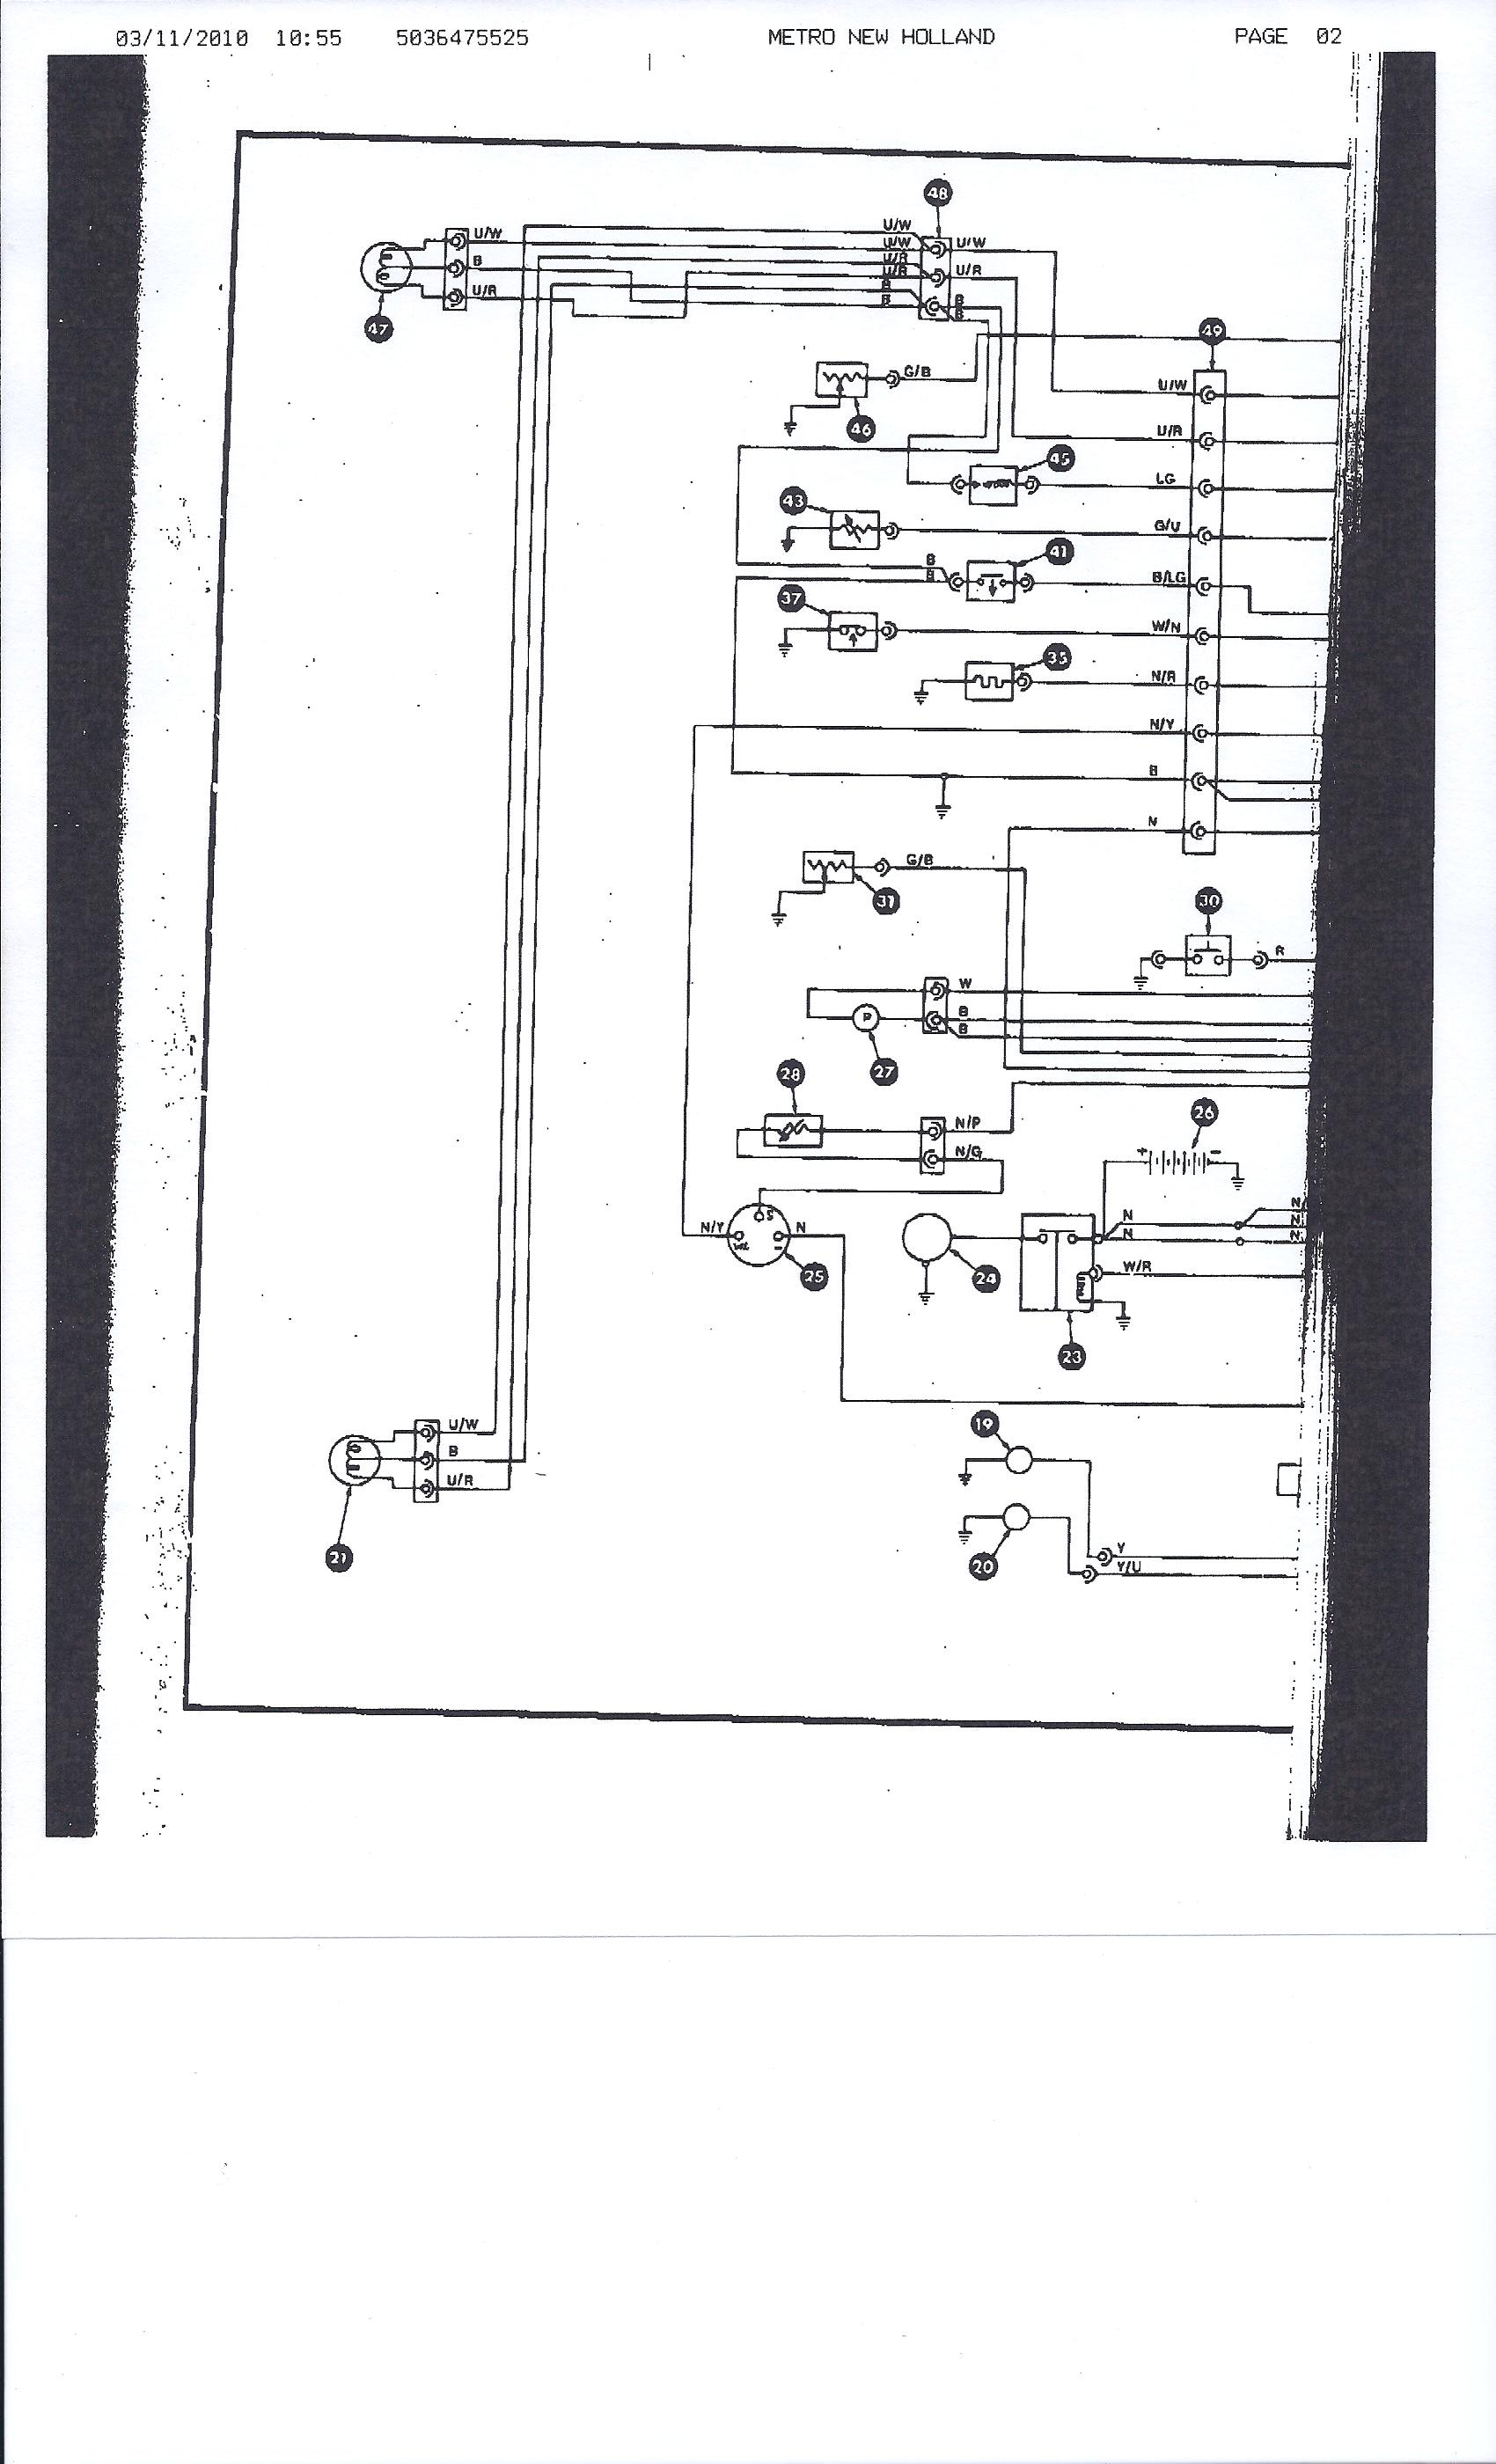 EE_4339] Naa Ford Tractor Electrical Wiring Diagram Schematic Wiring